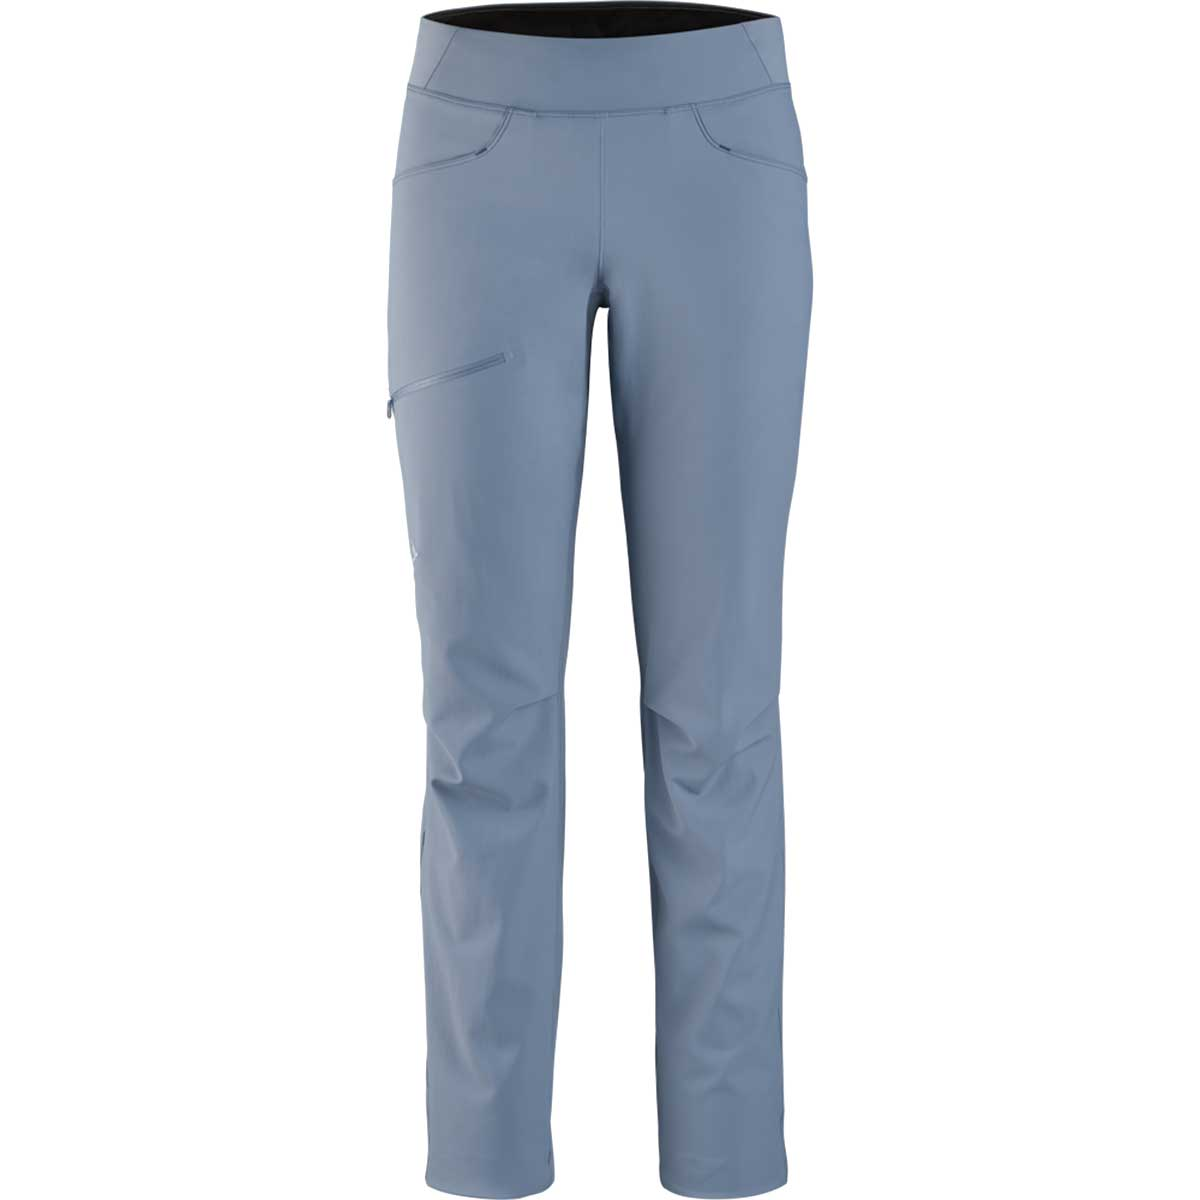 Arcteryx women's Sigma SL Pant in Stratosphere front view